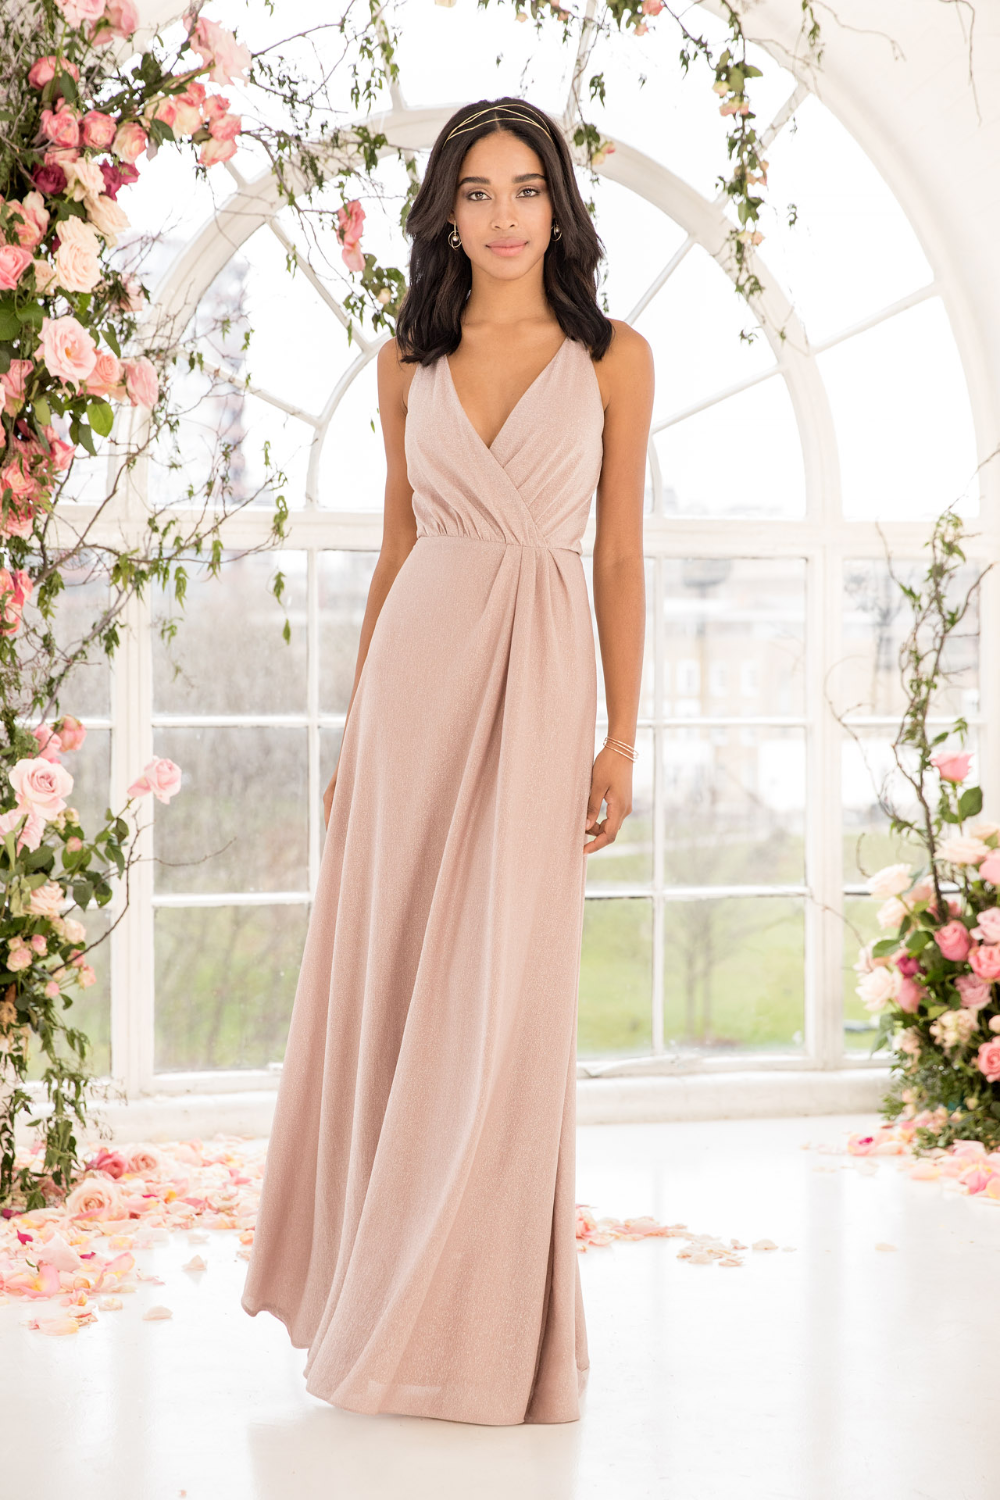 Style 17501 Bridesmaids Prom Dress Dresses, Bride attire